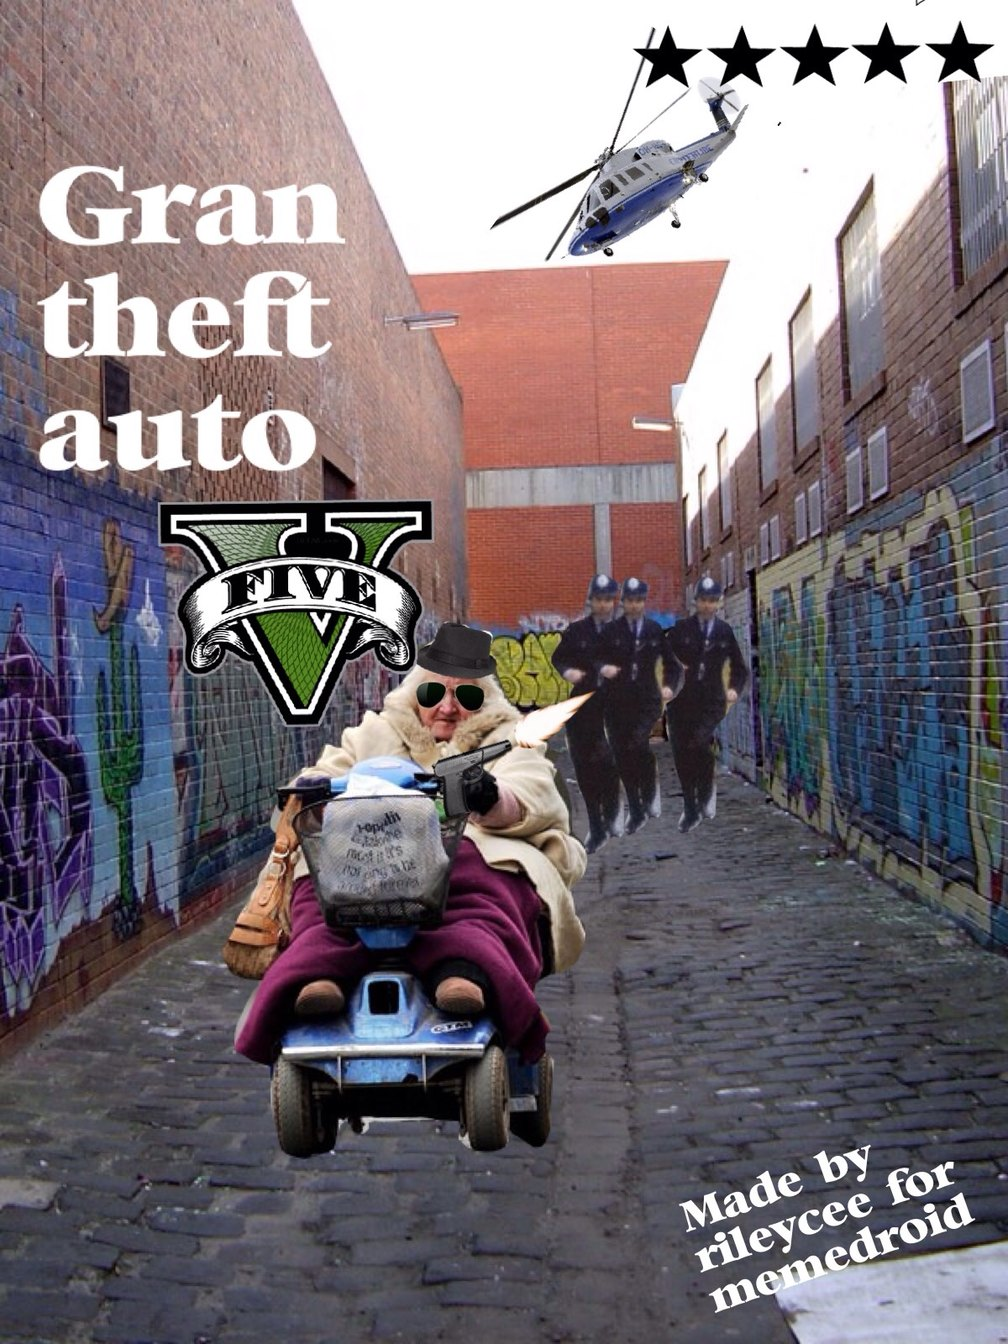 Gran theft auto..... Get it! - meme